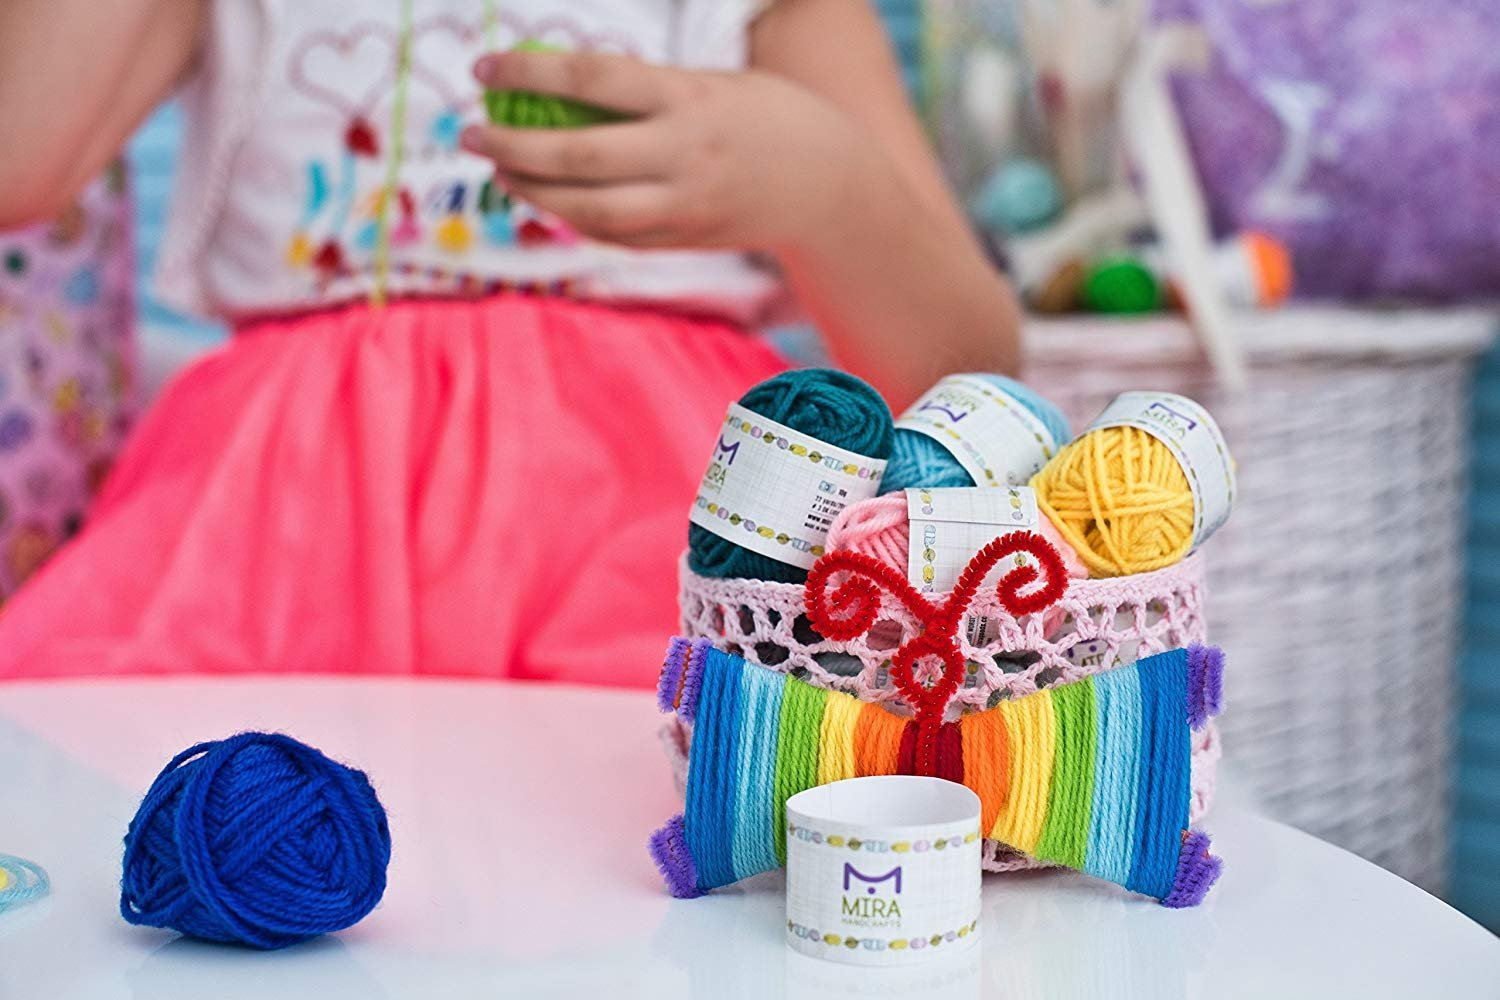 Mira Handcrafts 60 Yarn Bonbons - Total of 1312 Yard Acrylic Yarn for Knitting and Crochet - Yarn Bag for Storage and Accessories Included with Each Pack by Mira HandCrafts (Image #7)